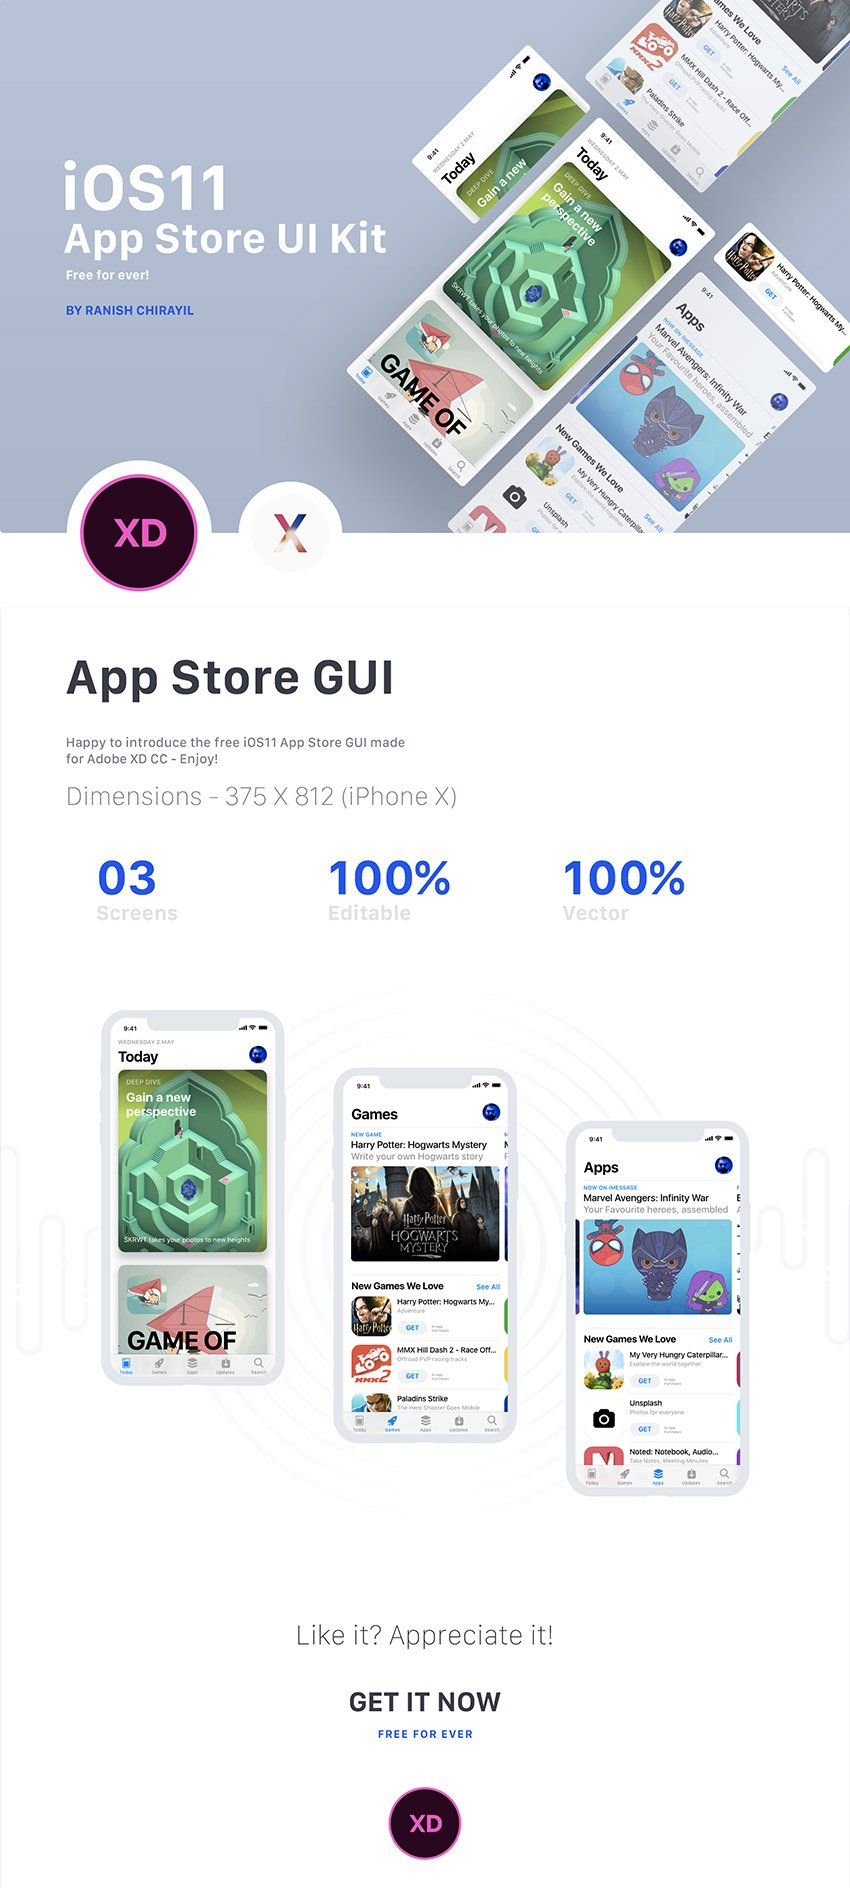 iOS 11 App Store UI Kit - 3 Free Screens for Xd - FreebiesUI